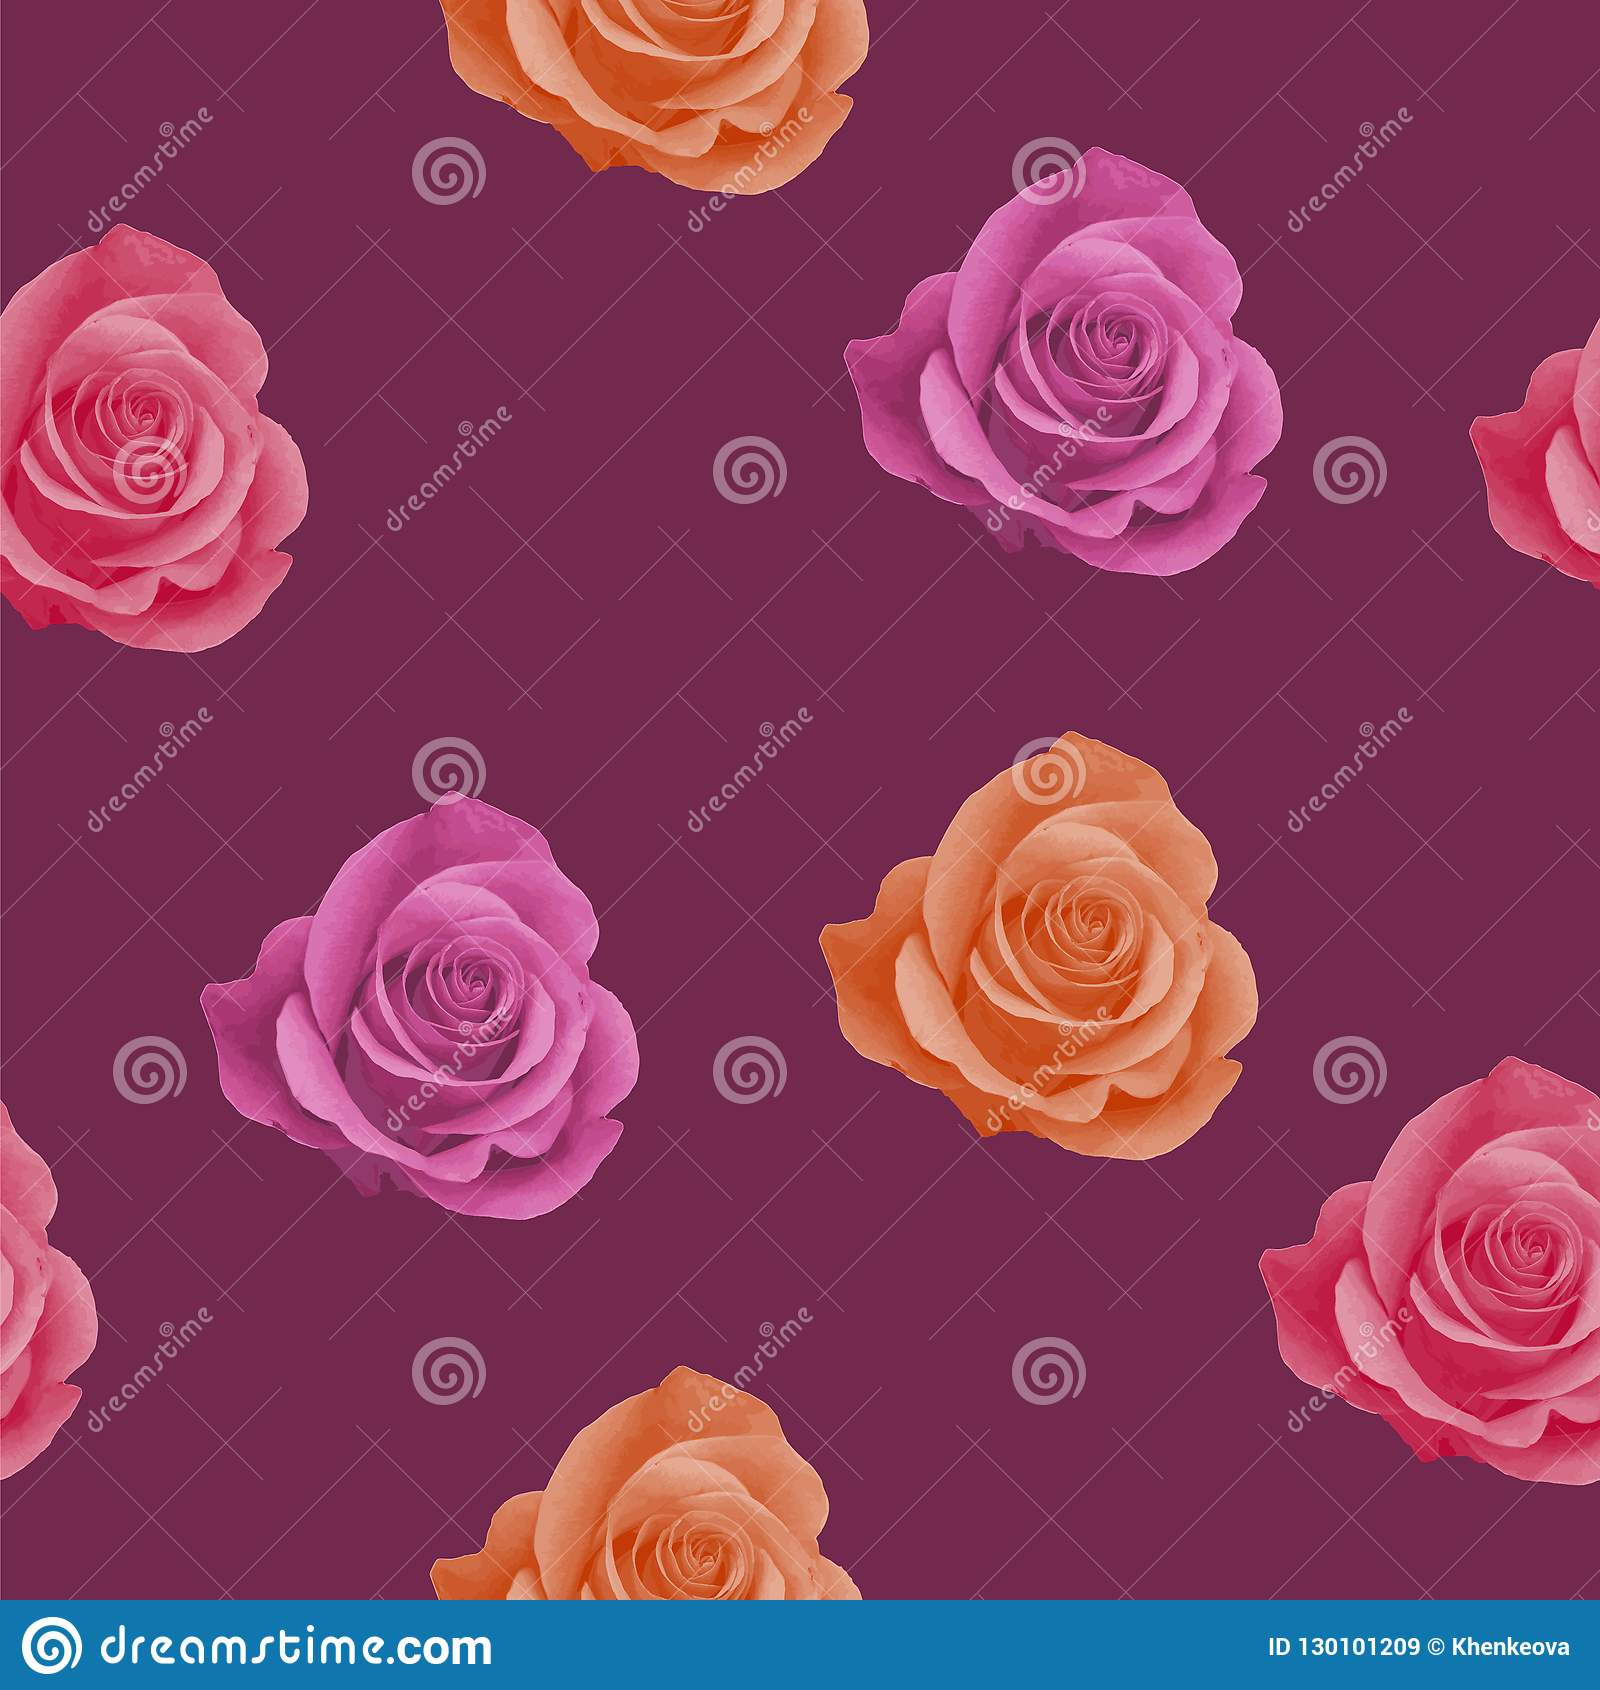 Seamless Pattern With Realistic Pink Orange And Red Roses On Red